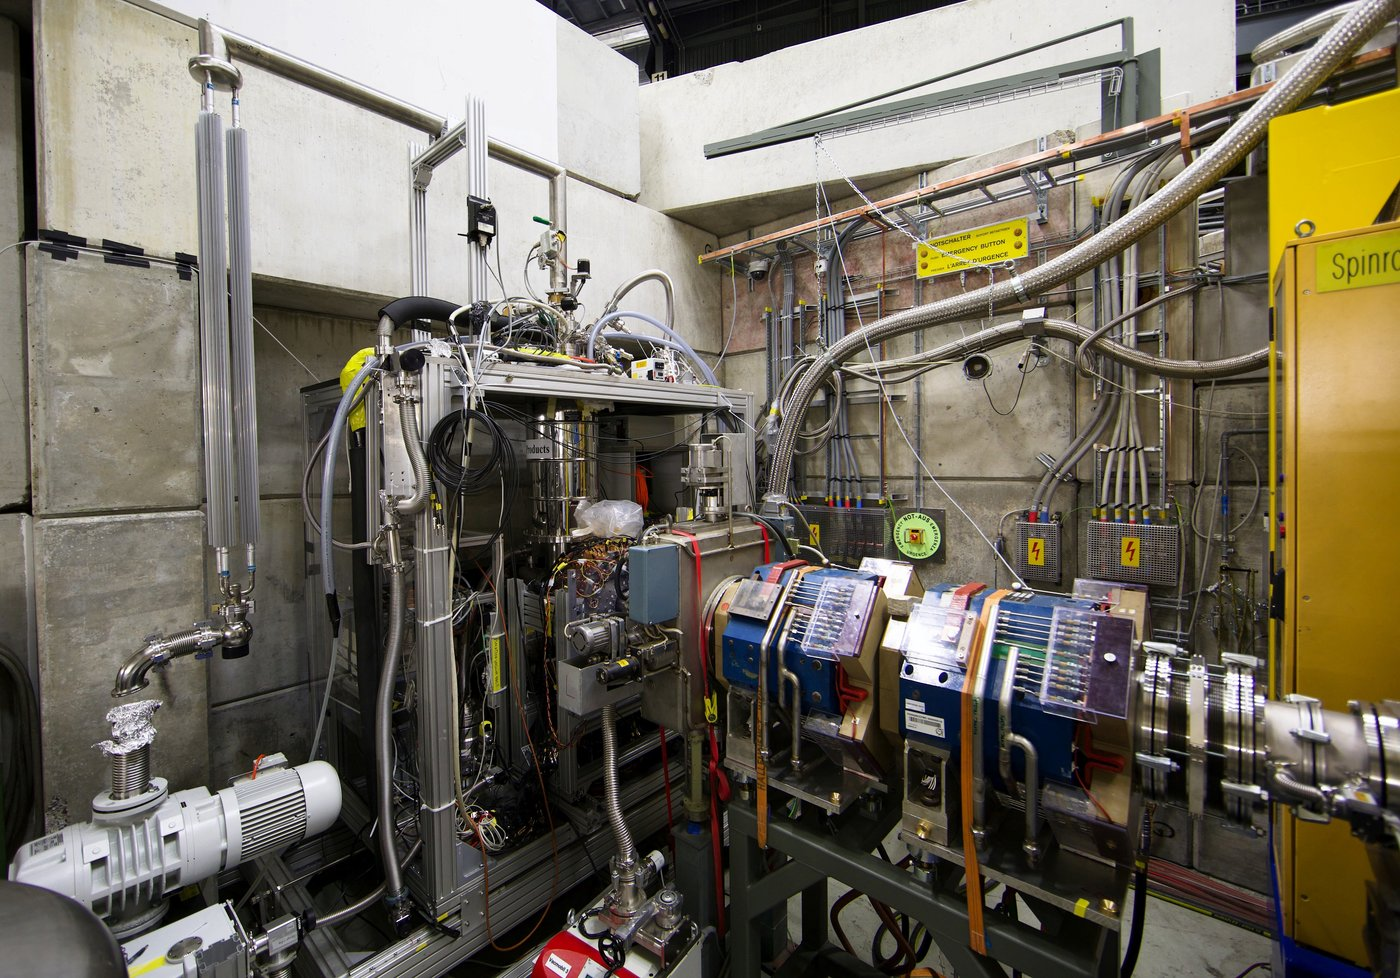 Experimental apparatus used to produce and detect pionic helium atoms